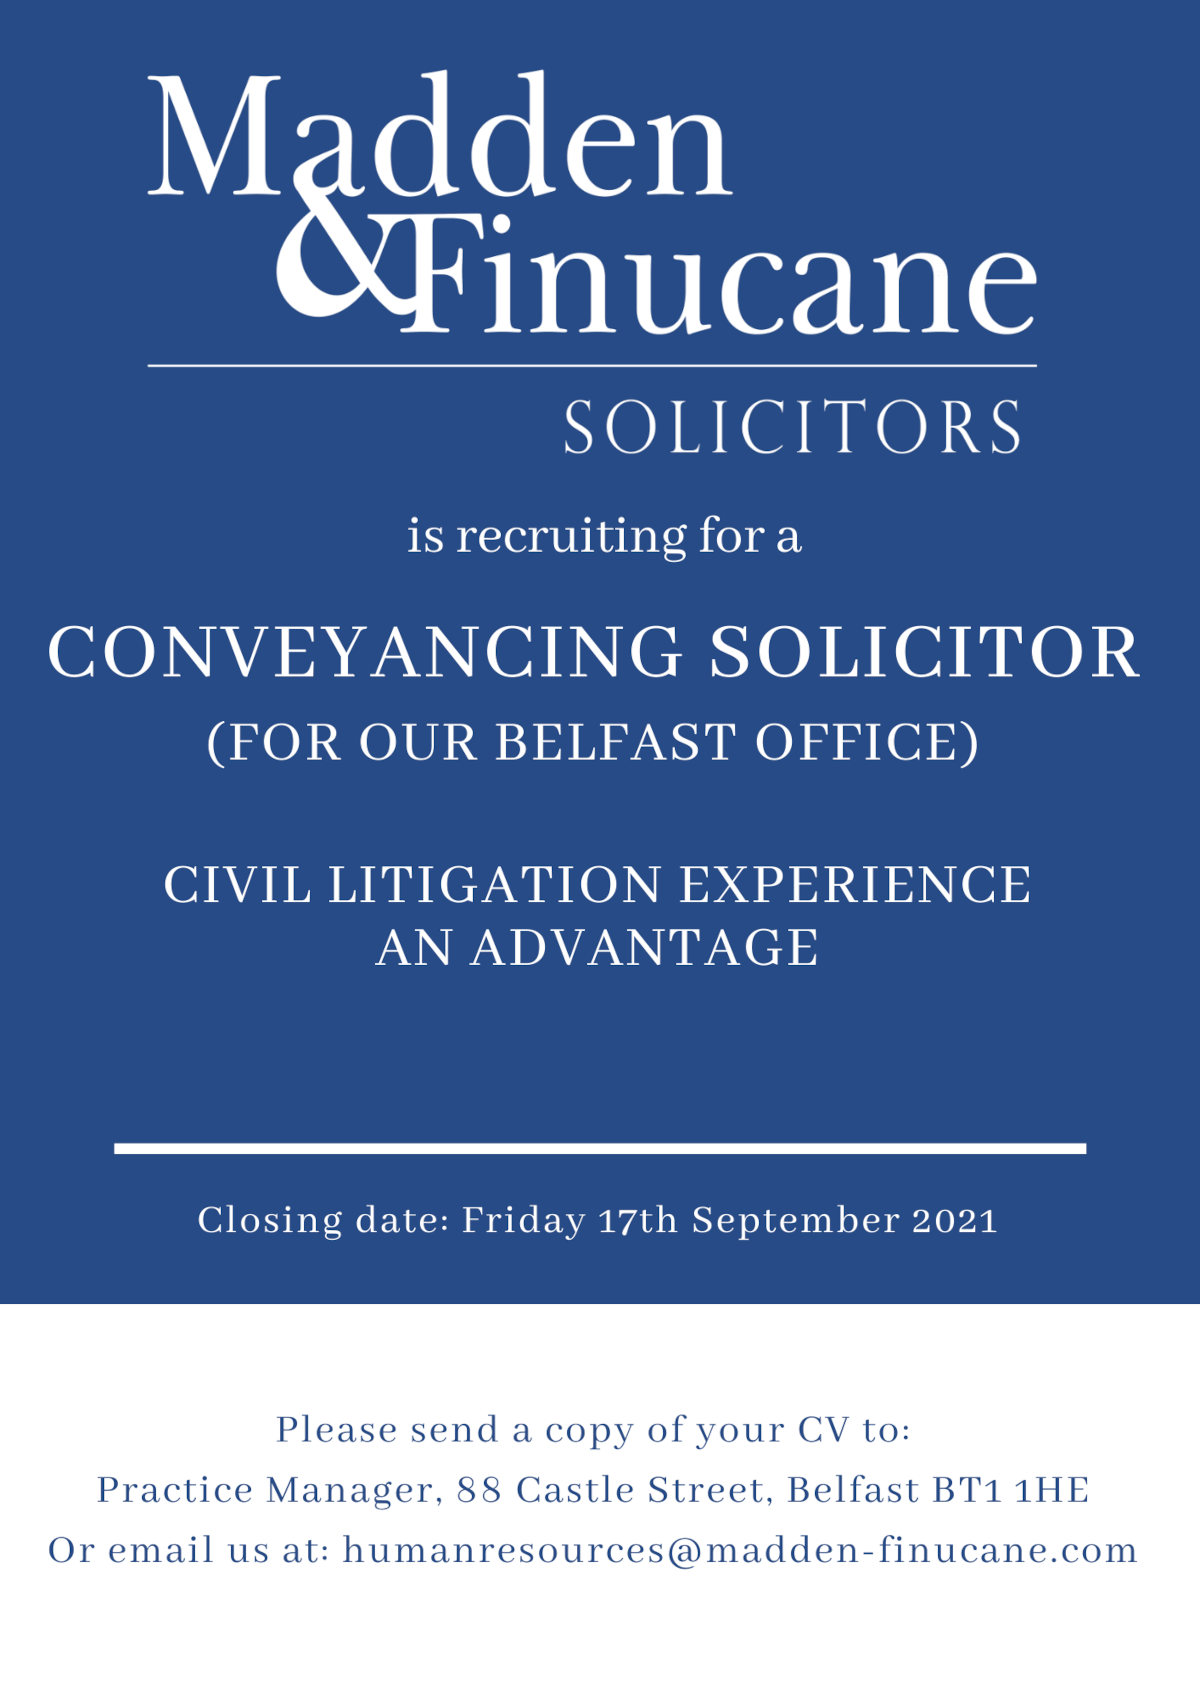 Conveyancing Solicitor Job Opportunity at Madden & Finucane Solicitors